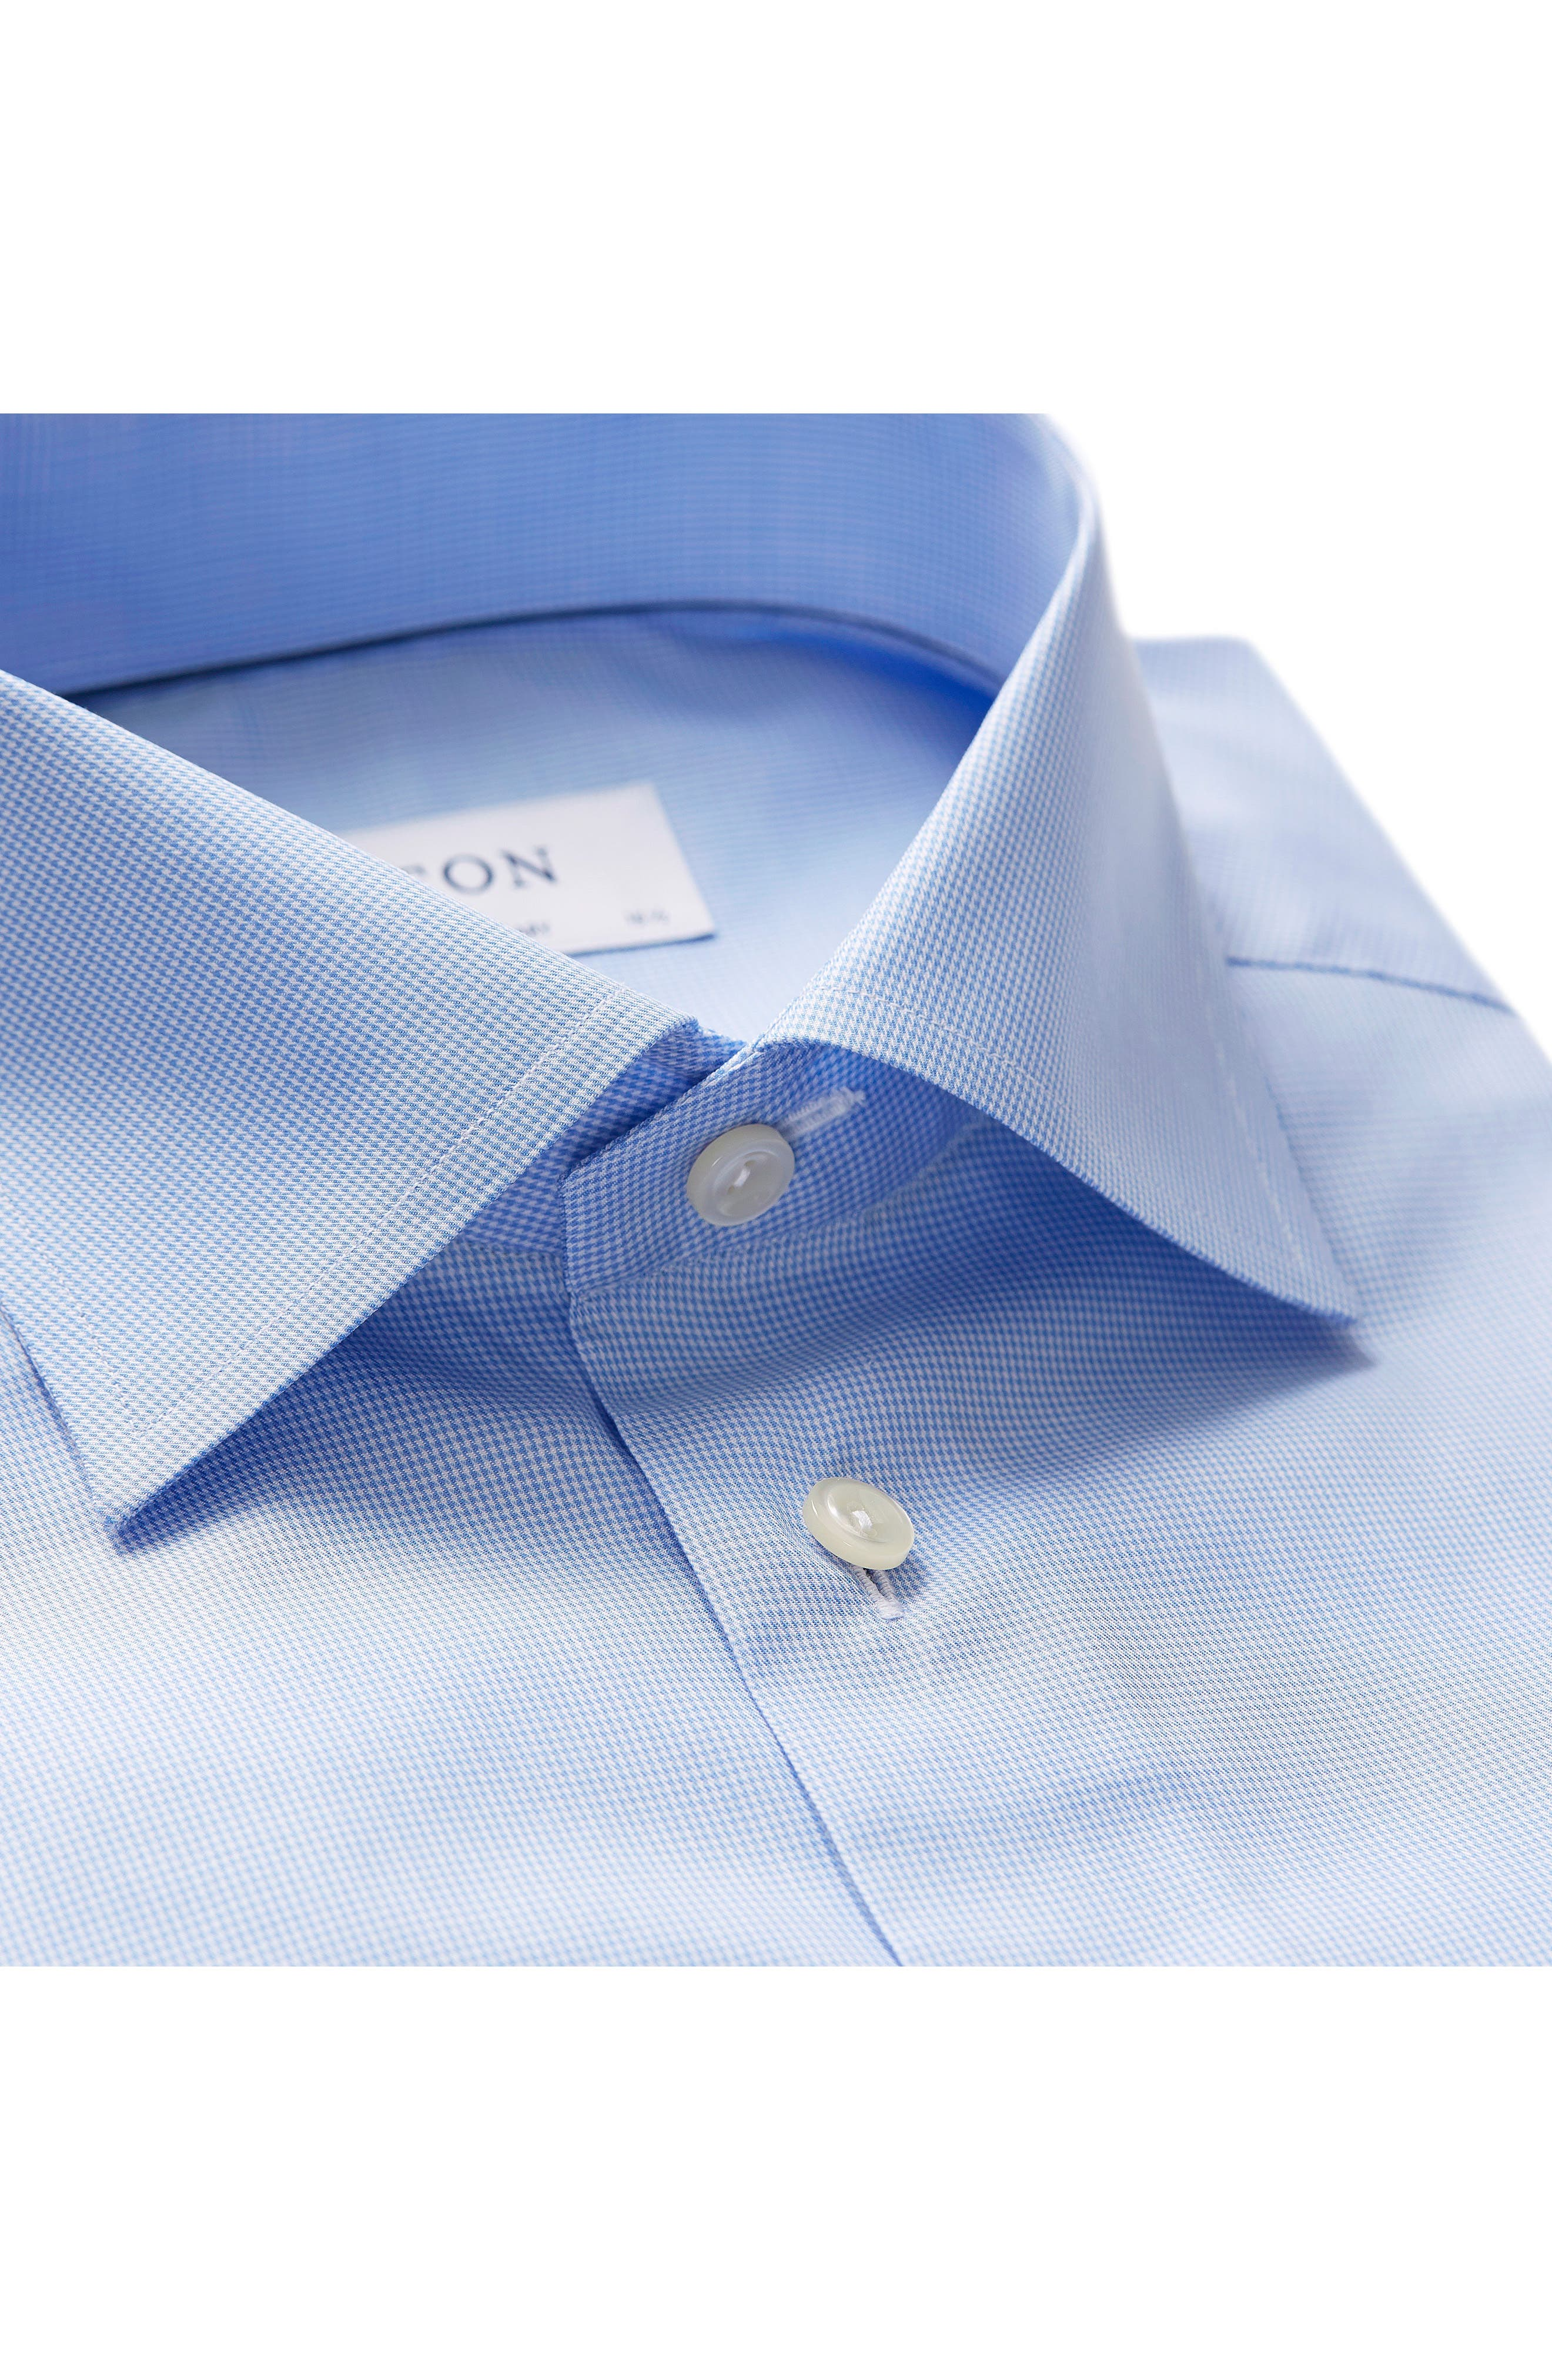 Contemporary Fit Houndstooth Dress Shirt,                             Alternate thumbnail 4, color,                             Blue